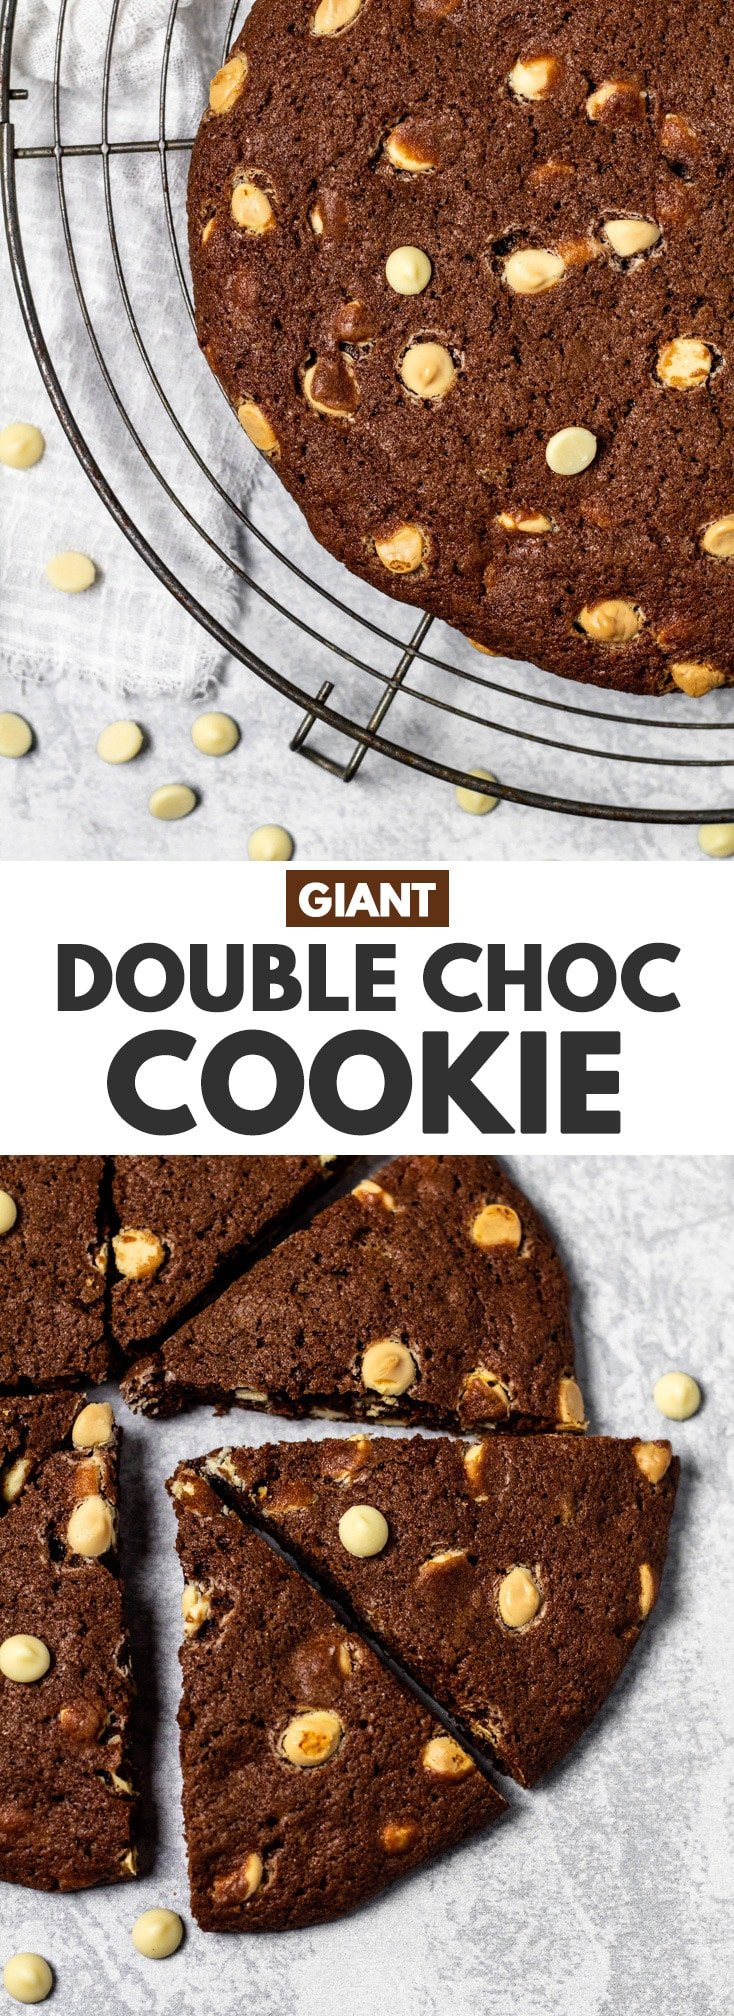 Giant Double Chocolate Chip Cookie